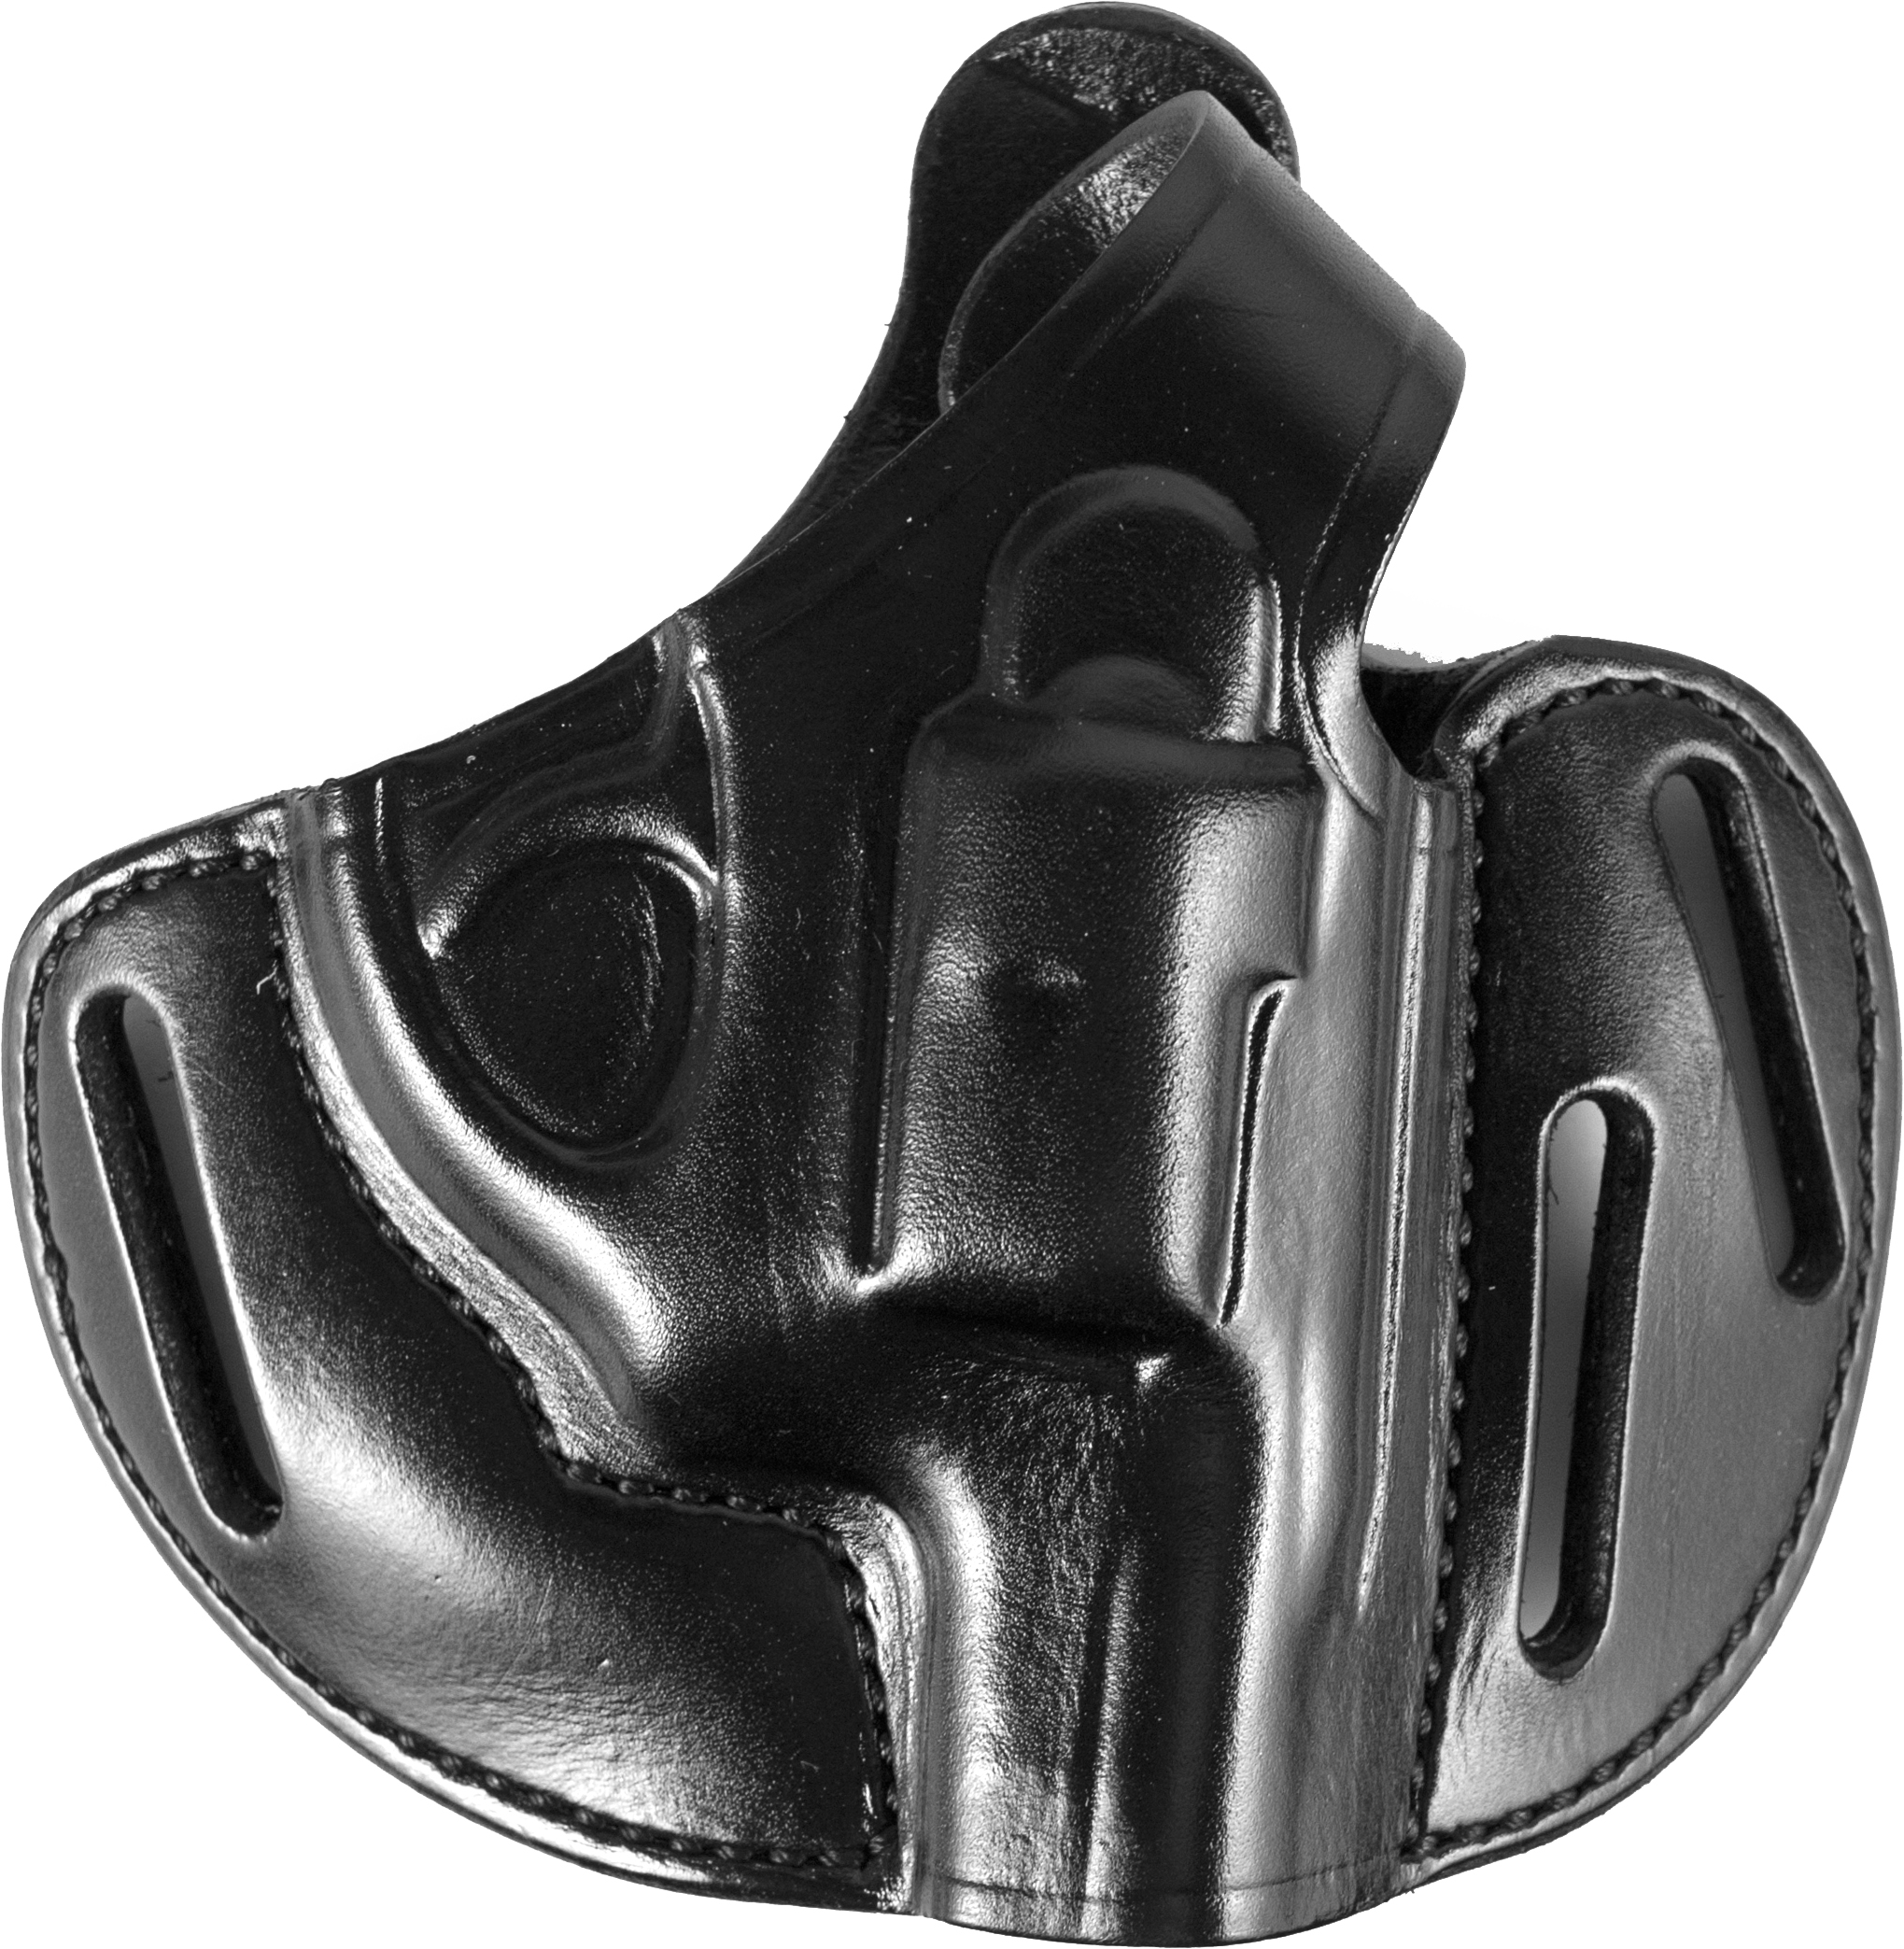 Bianchi Model 77 Piranha 22A Holsters for Ruger LCR  38 Special